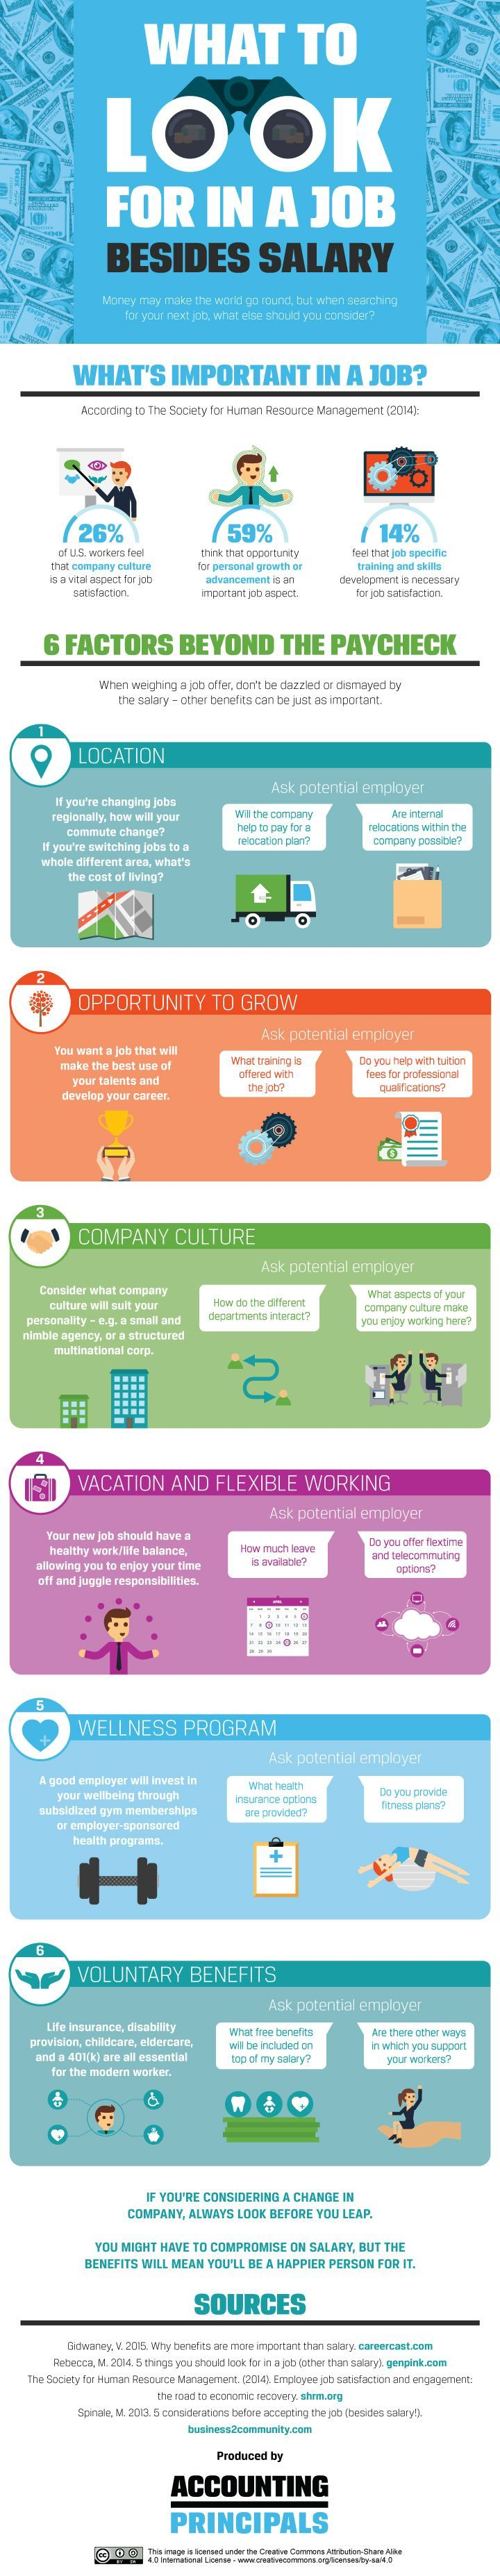 What to Look for in a Job Beyond the Salary #infographic ~ Visualistan